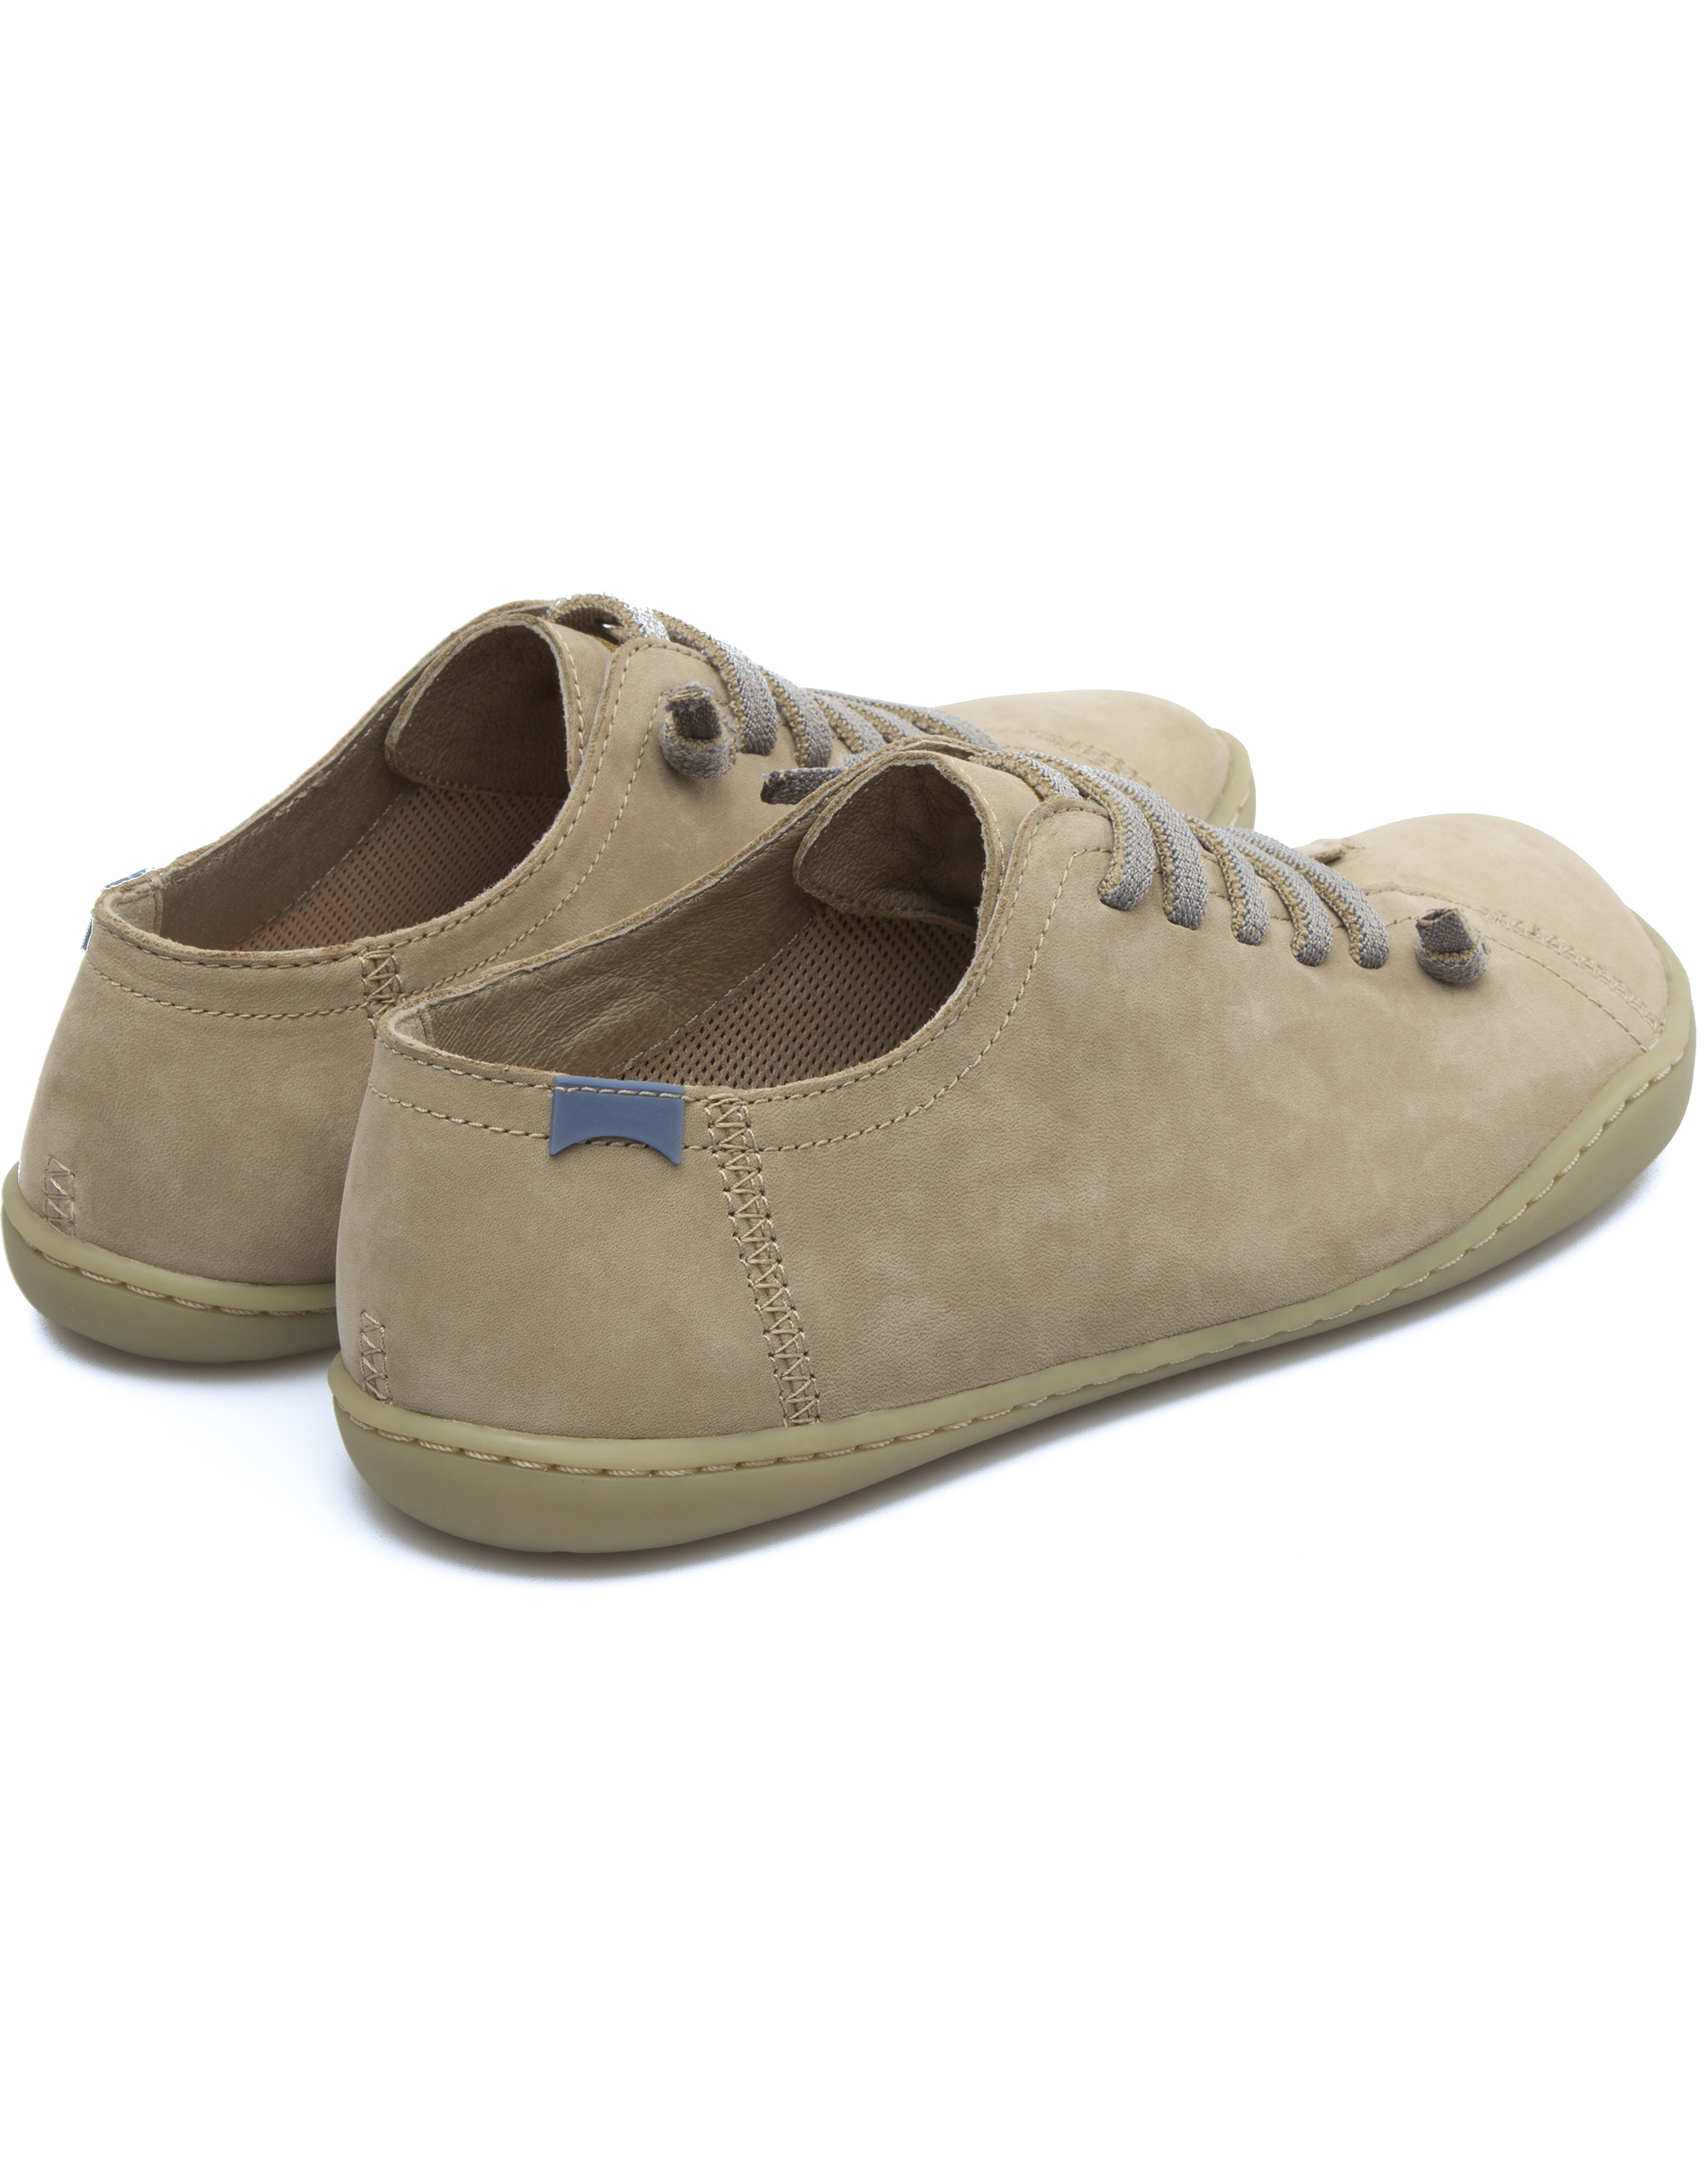 Camper Shoes Online Store